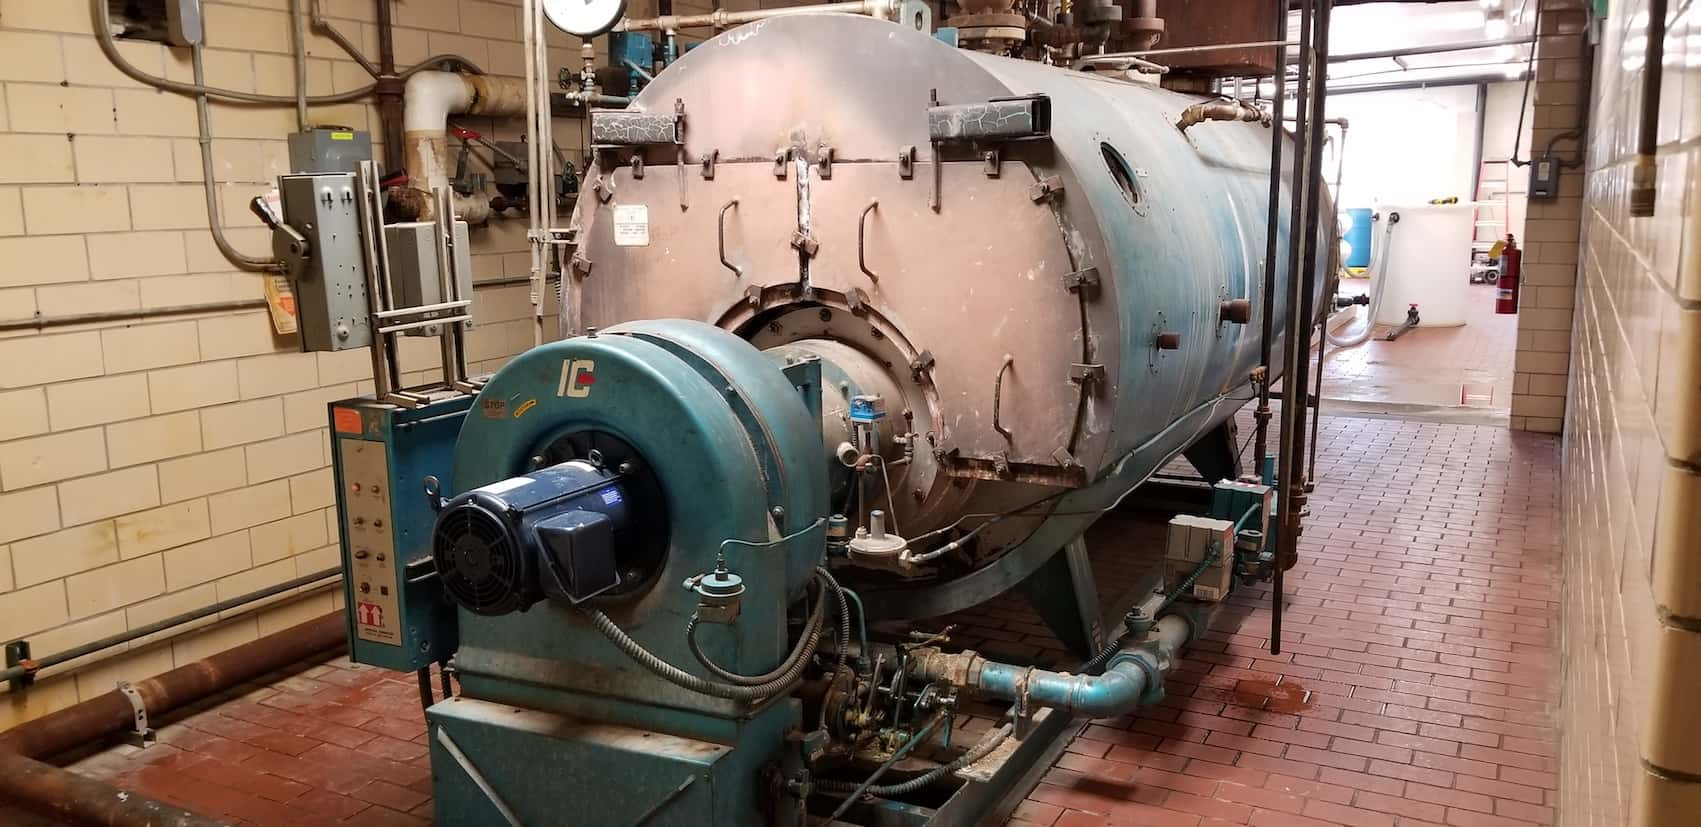 "Highlander 350p Horizontal Boiler, Model 350WB10S, S/N 1551, 150 psi, 8,400,000 BTU, with Industrial Combustion Burner, Natural Gas Fired, with Related Valves and Controls (Approx. Overall Dimensions 18'L x 6' 6"" W x 7'H)"